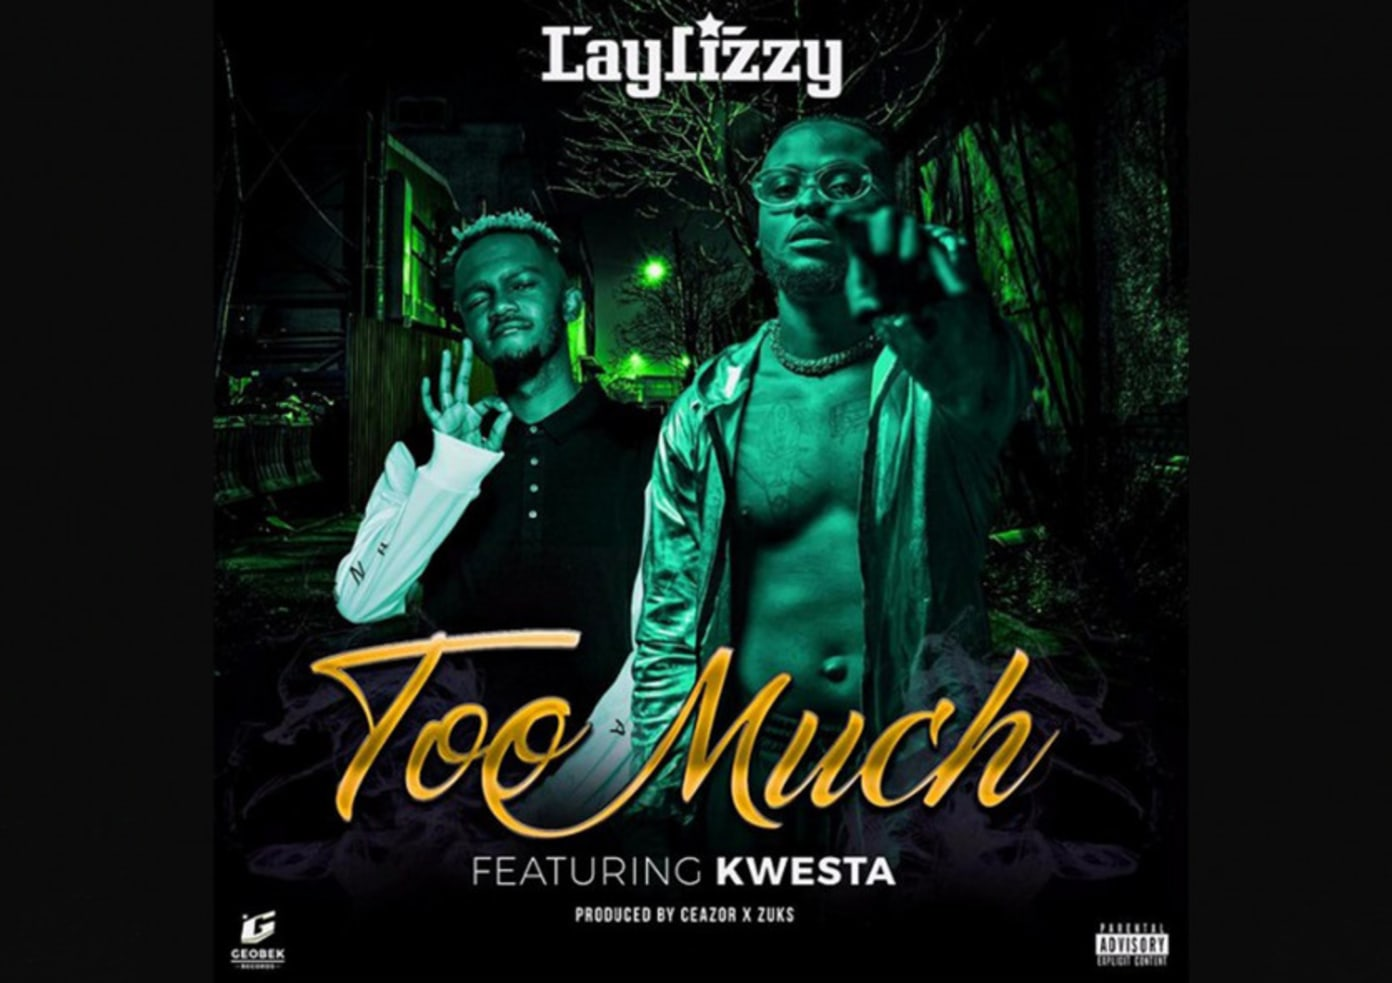 Laylizzy and Kwesta Join for Too Much